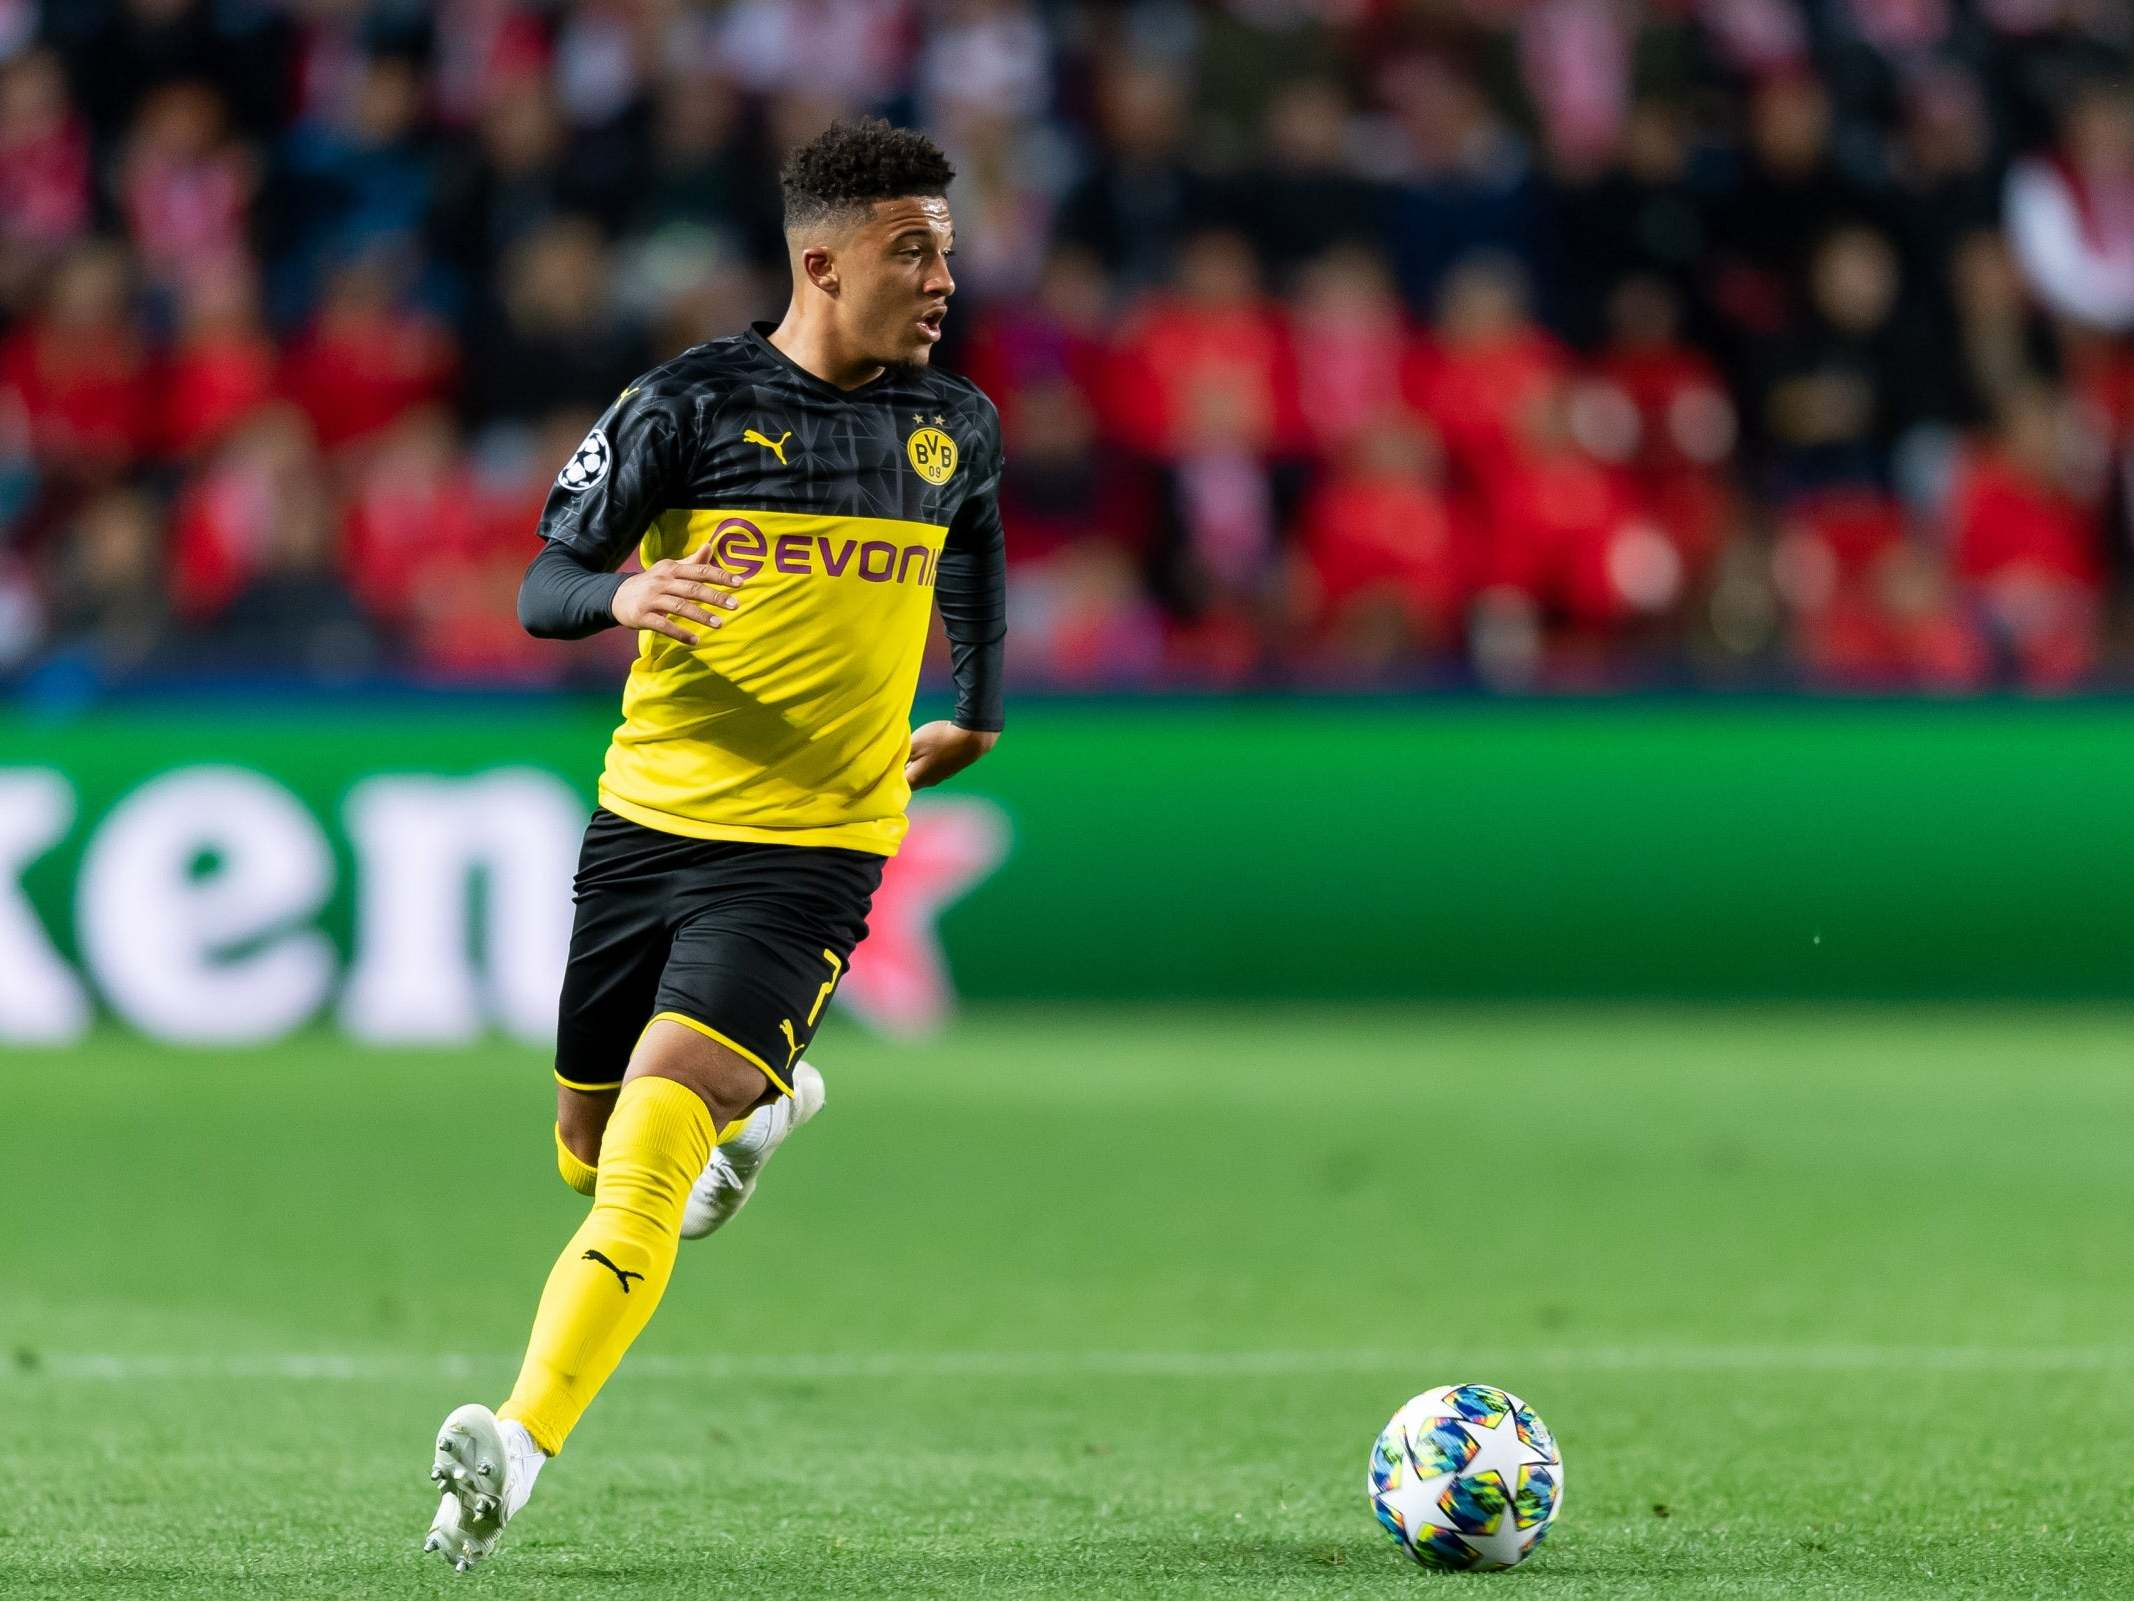 Liverpool transfer news: Club have 'great interest' in Jadon Sancho, says Dietmar Hamann